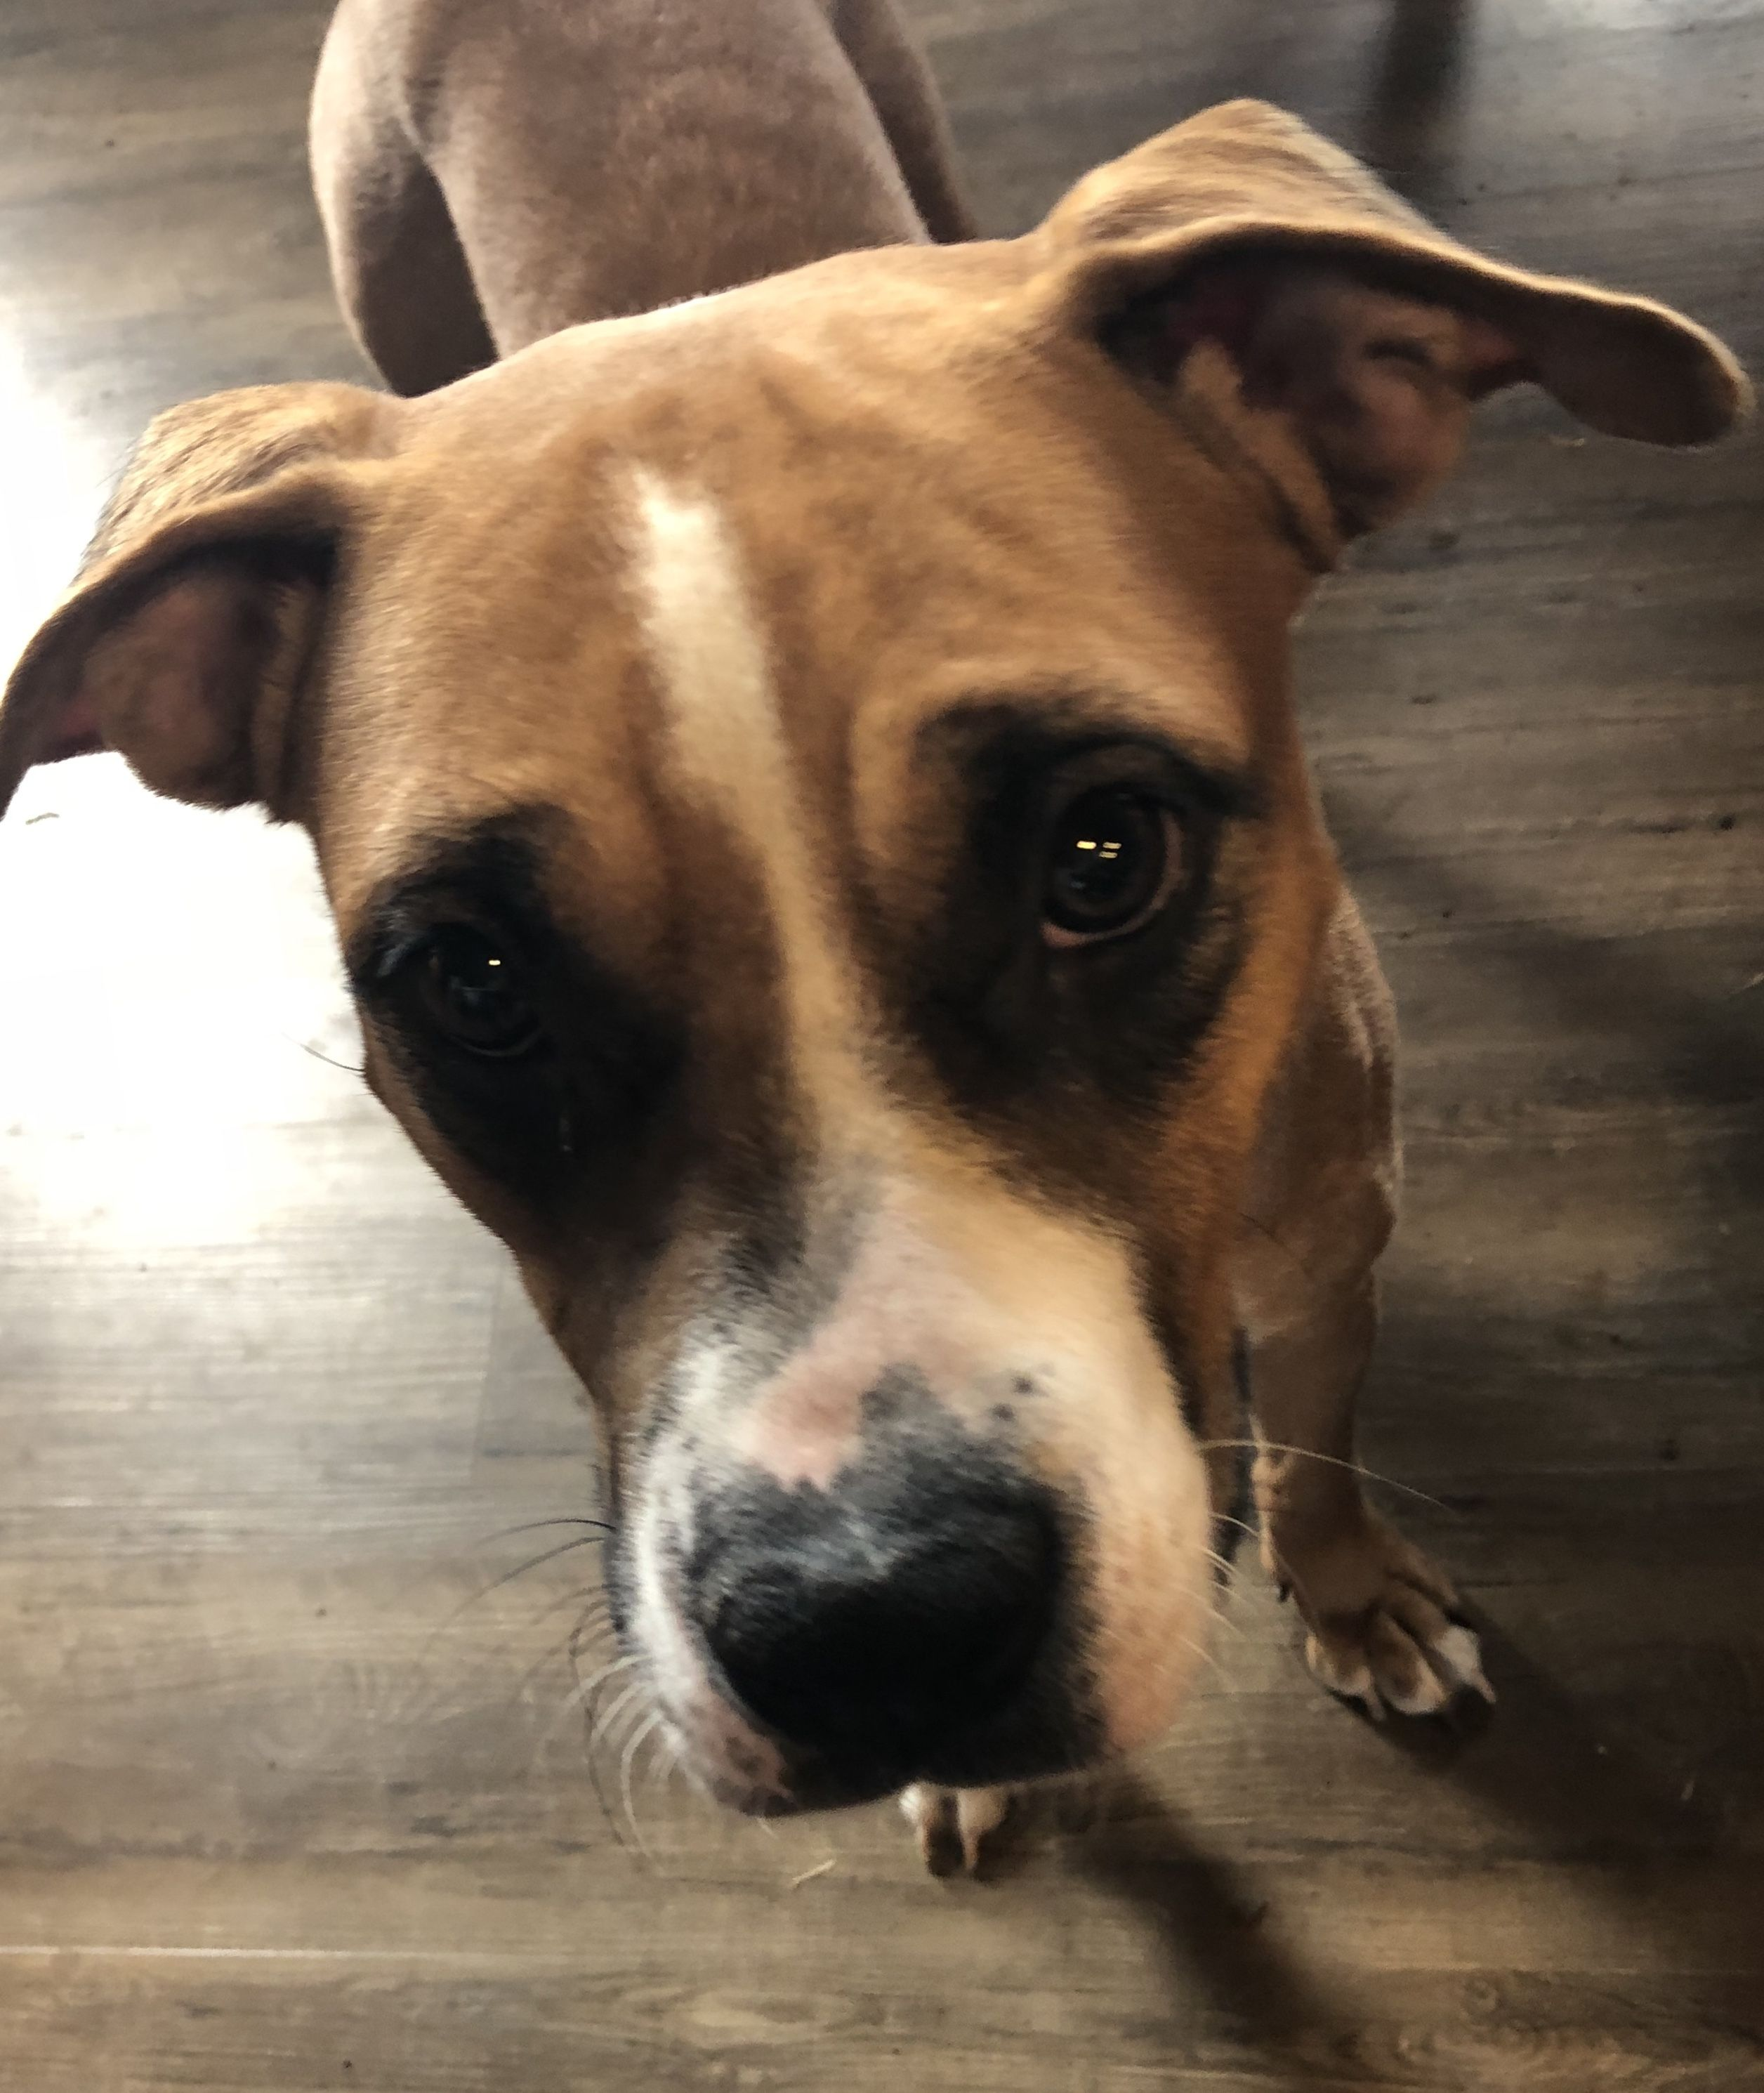 Adopt Dee on Animal rescue, Pets, Dogs